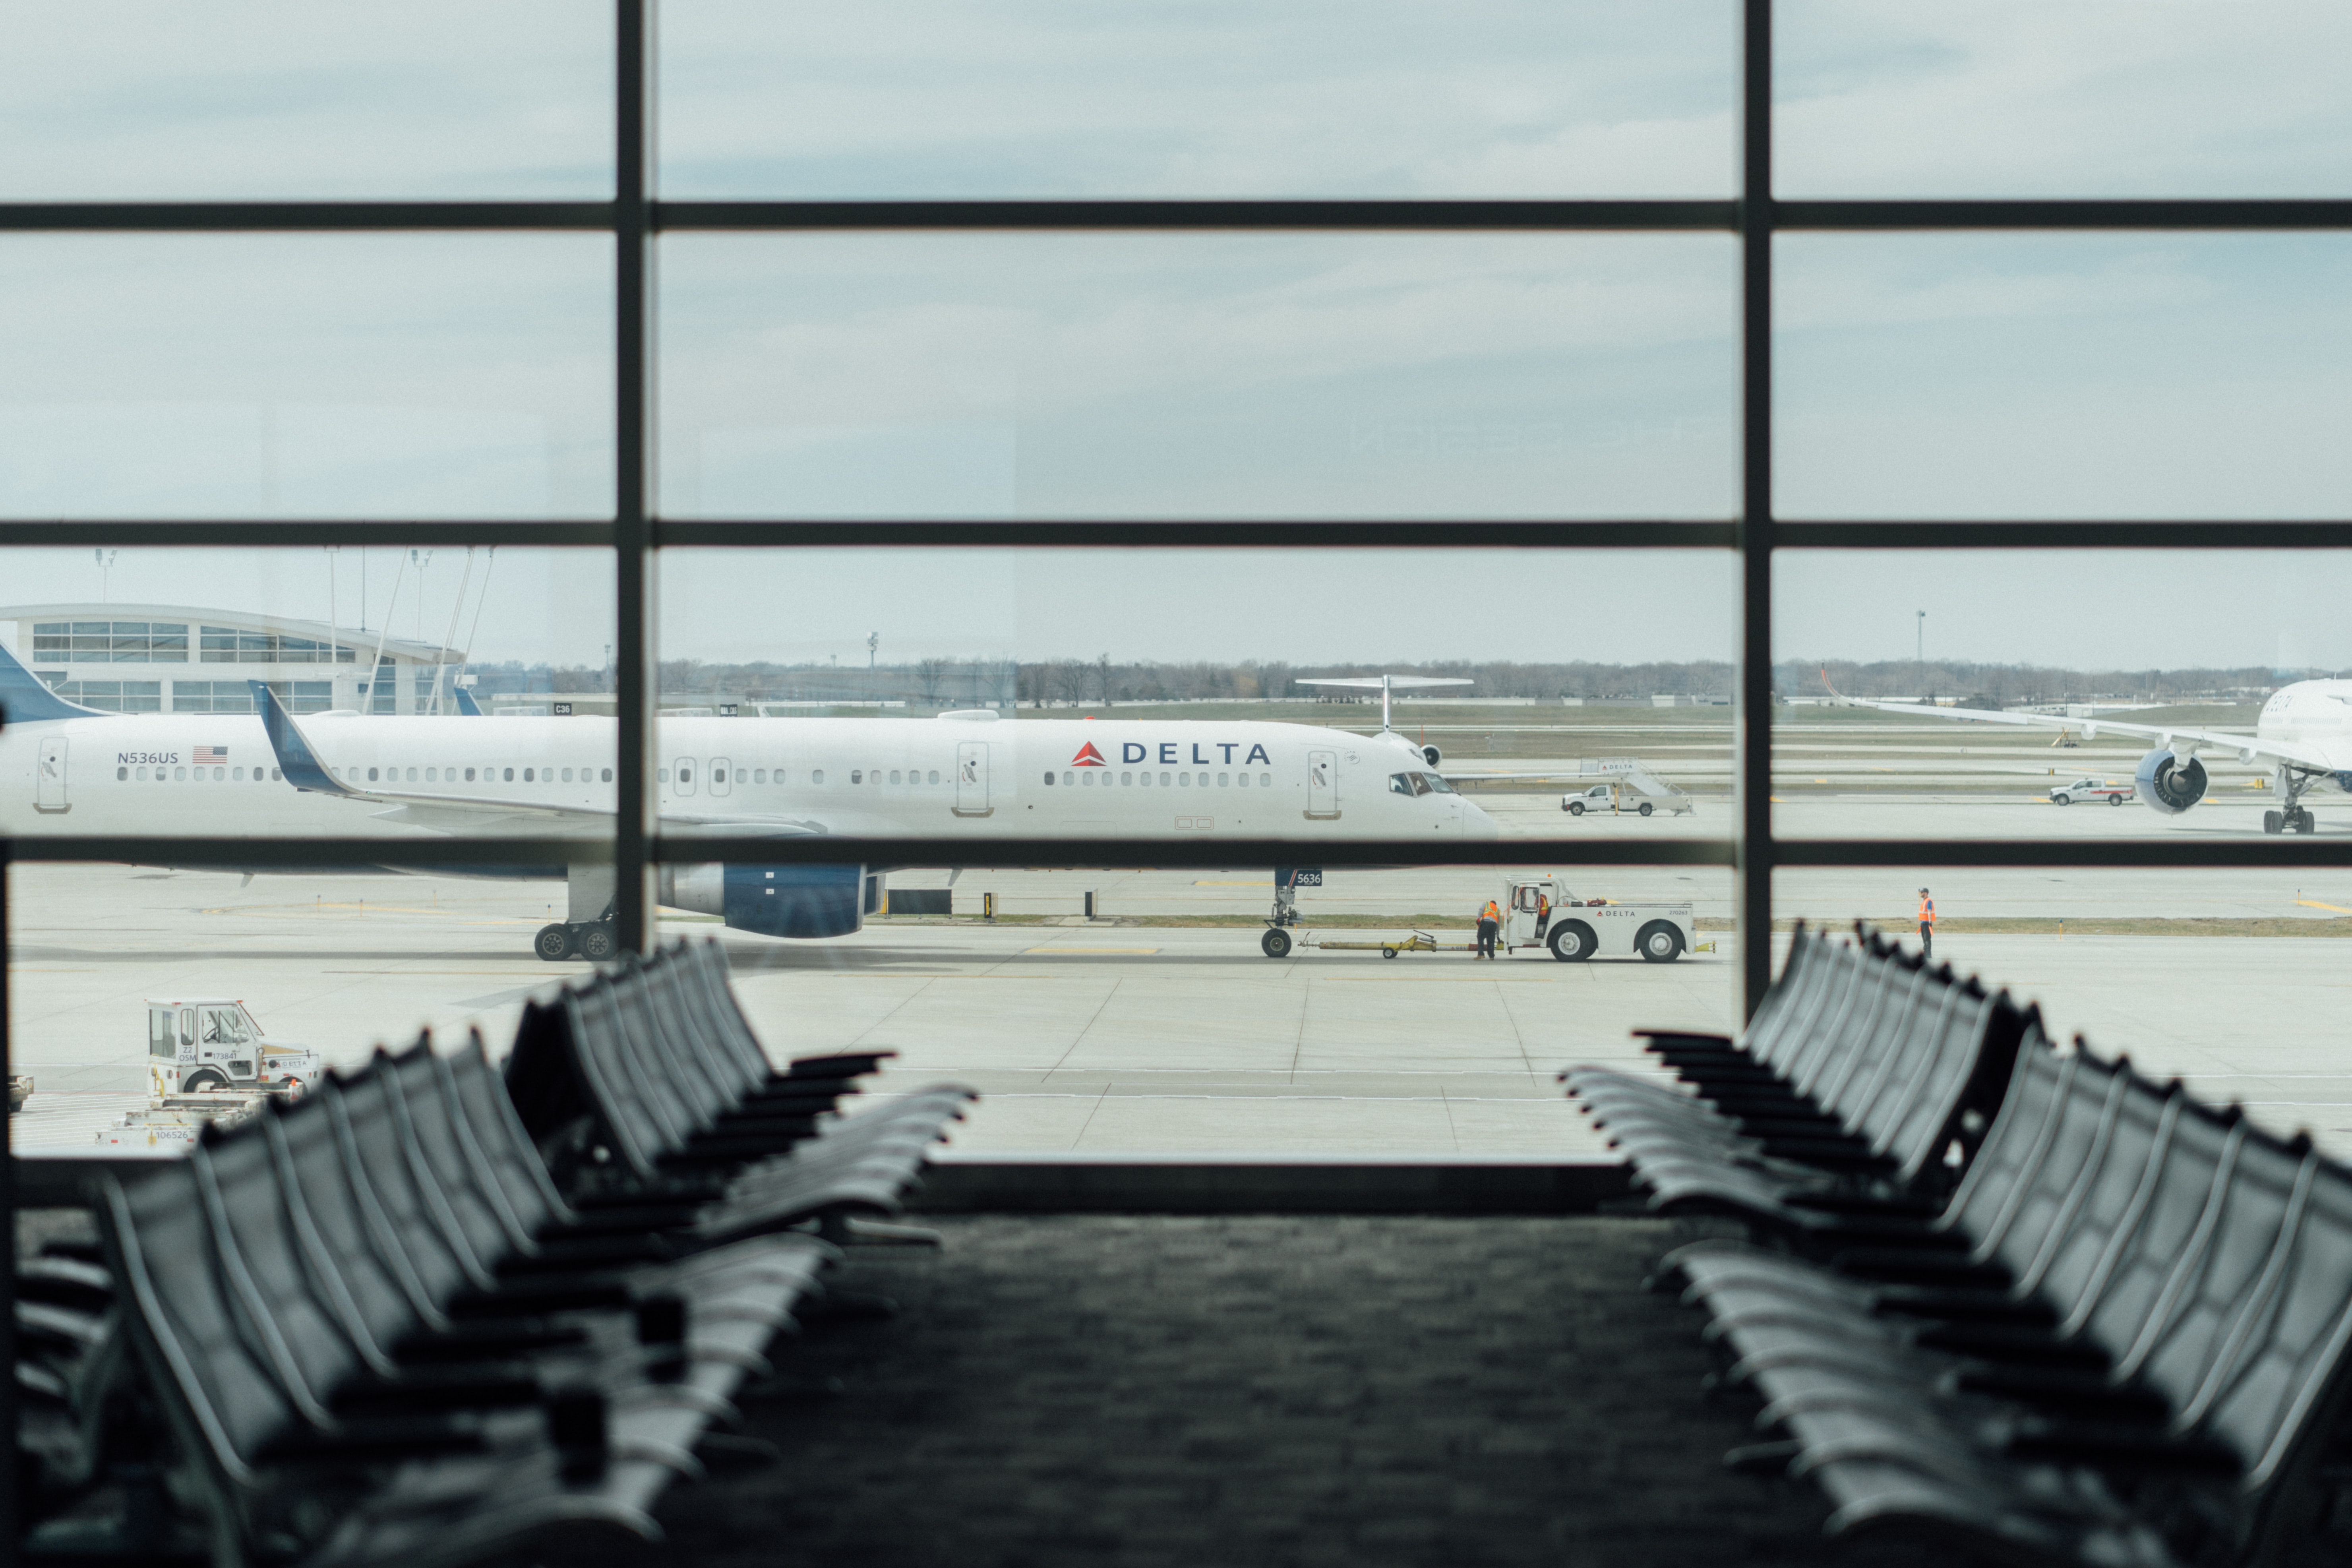 blue and white Delta airplane